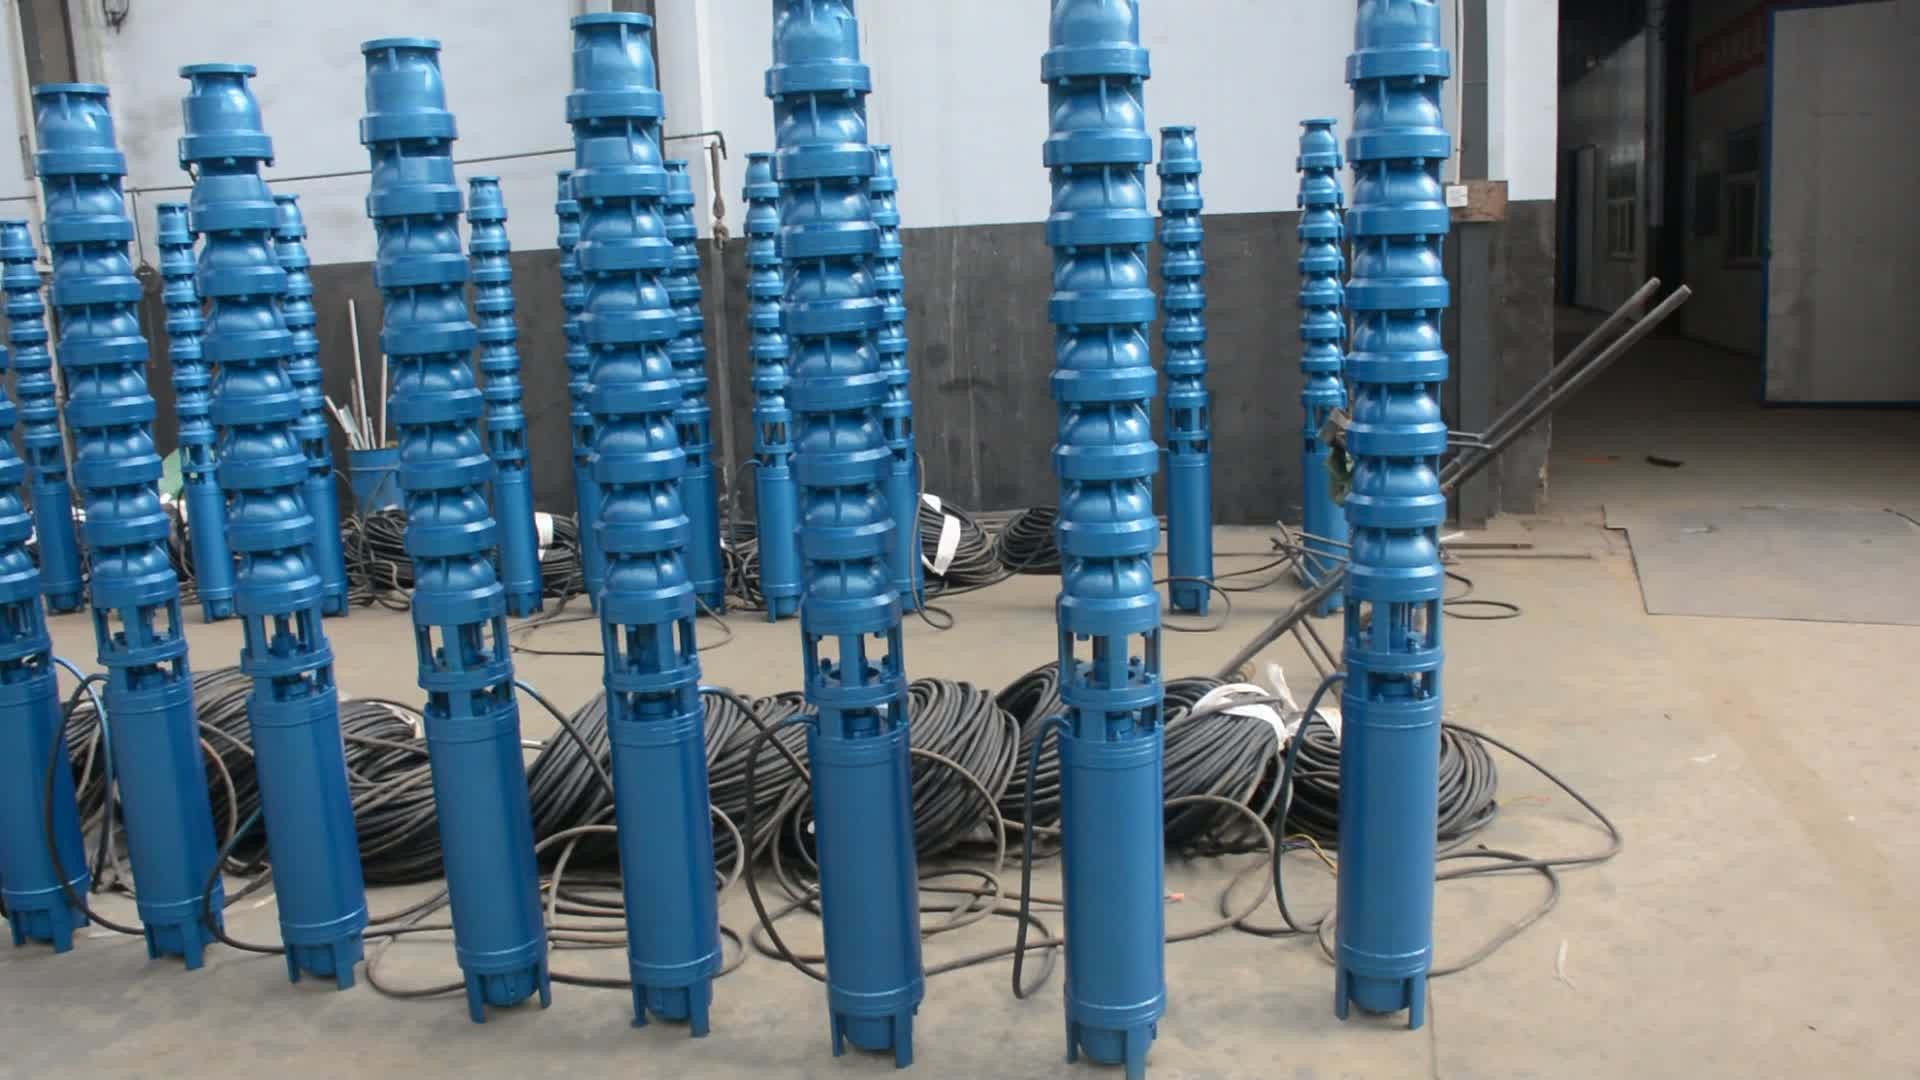 8 10 12 Inch 20hp 25hp 30hp 40hp 50hp 100 hp Electric Deep Well Pumps Borehole Water Submersible Pump Prices